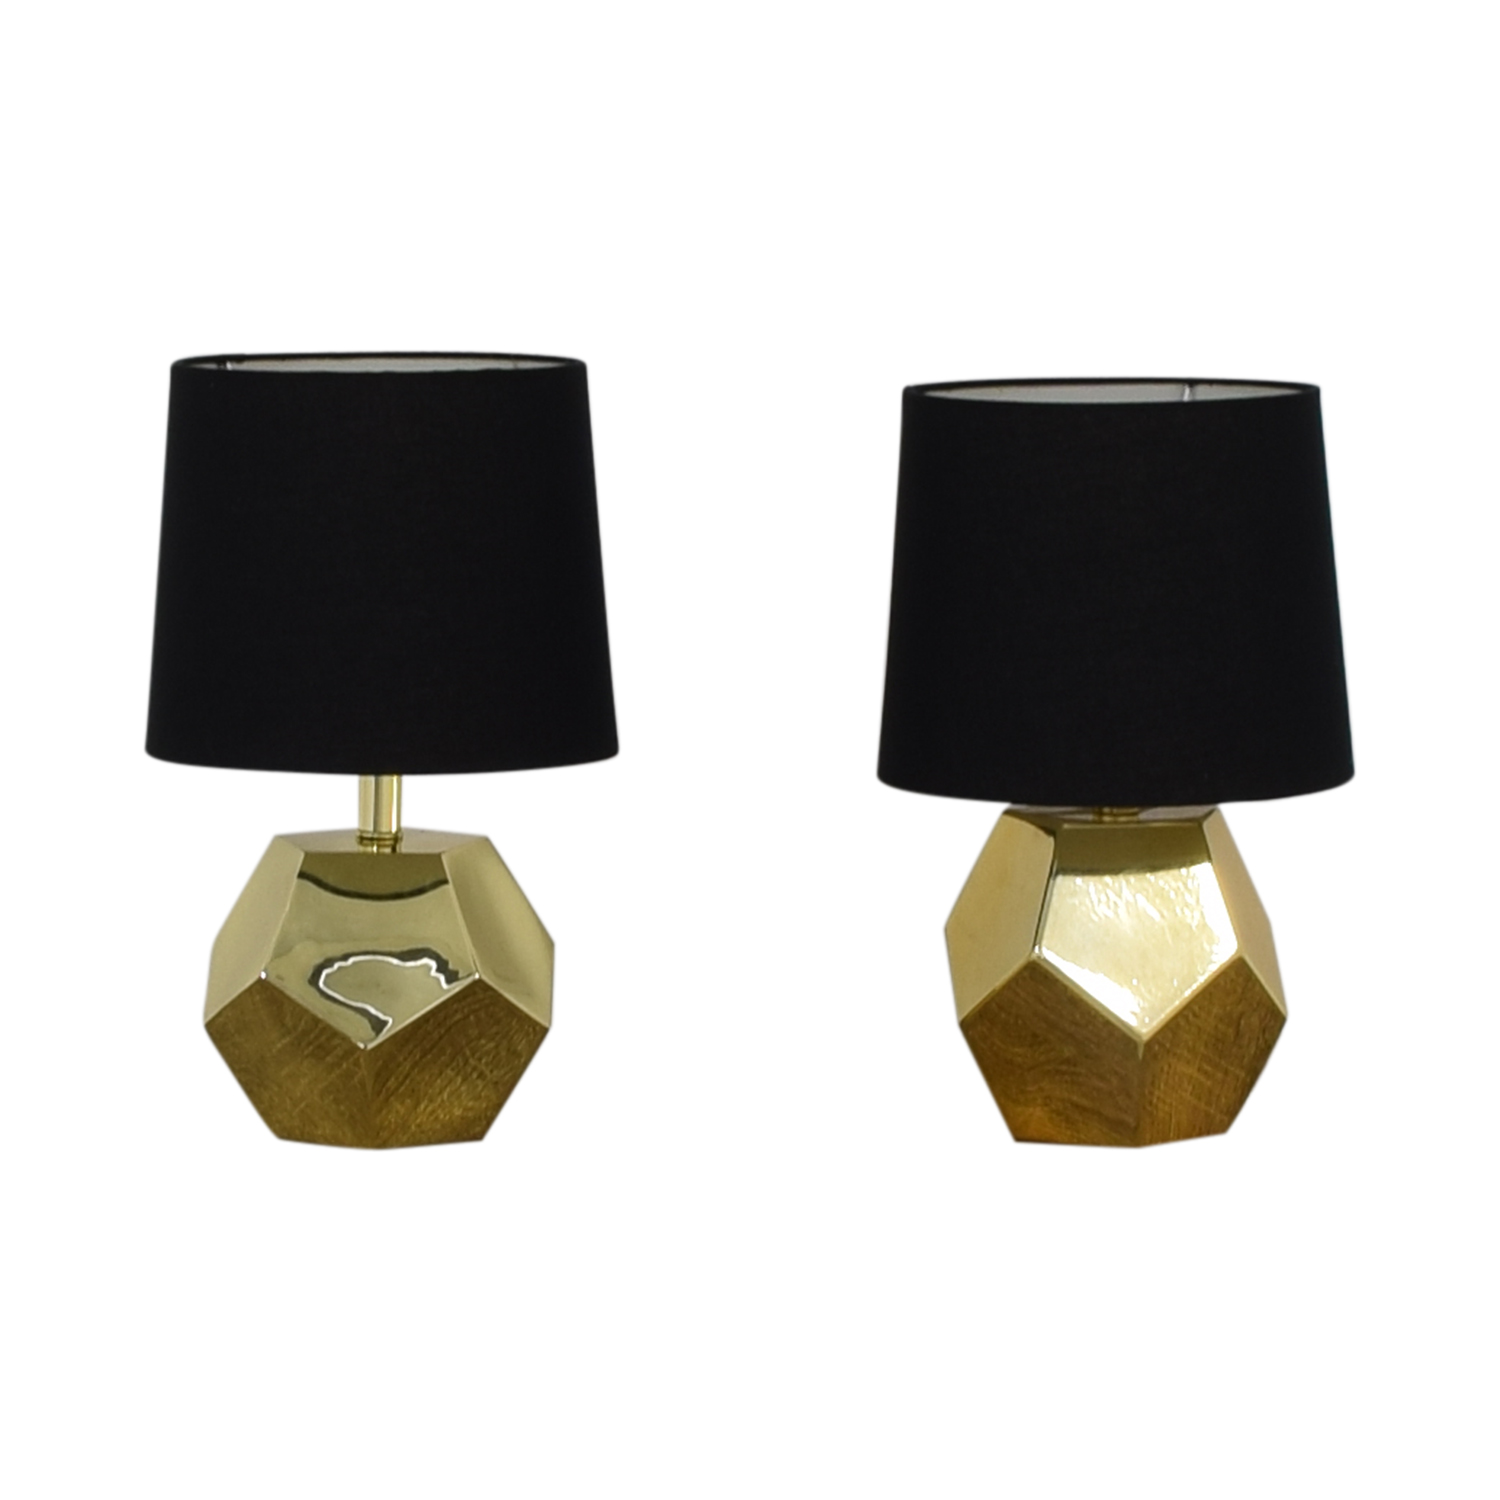 Land of Nod Land of Nod Between a Rock and a Table Lamps discount